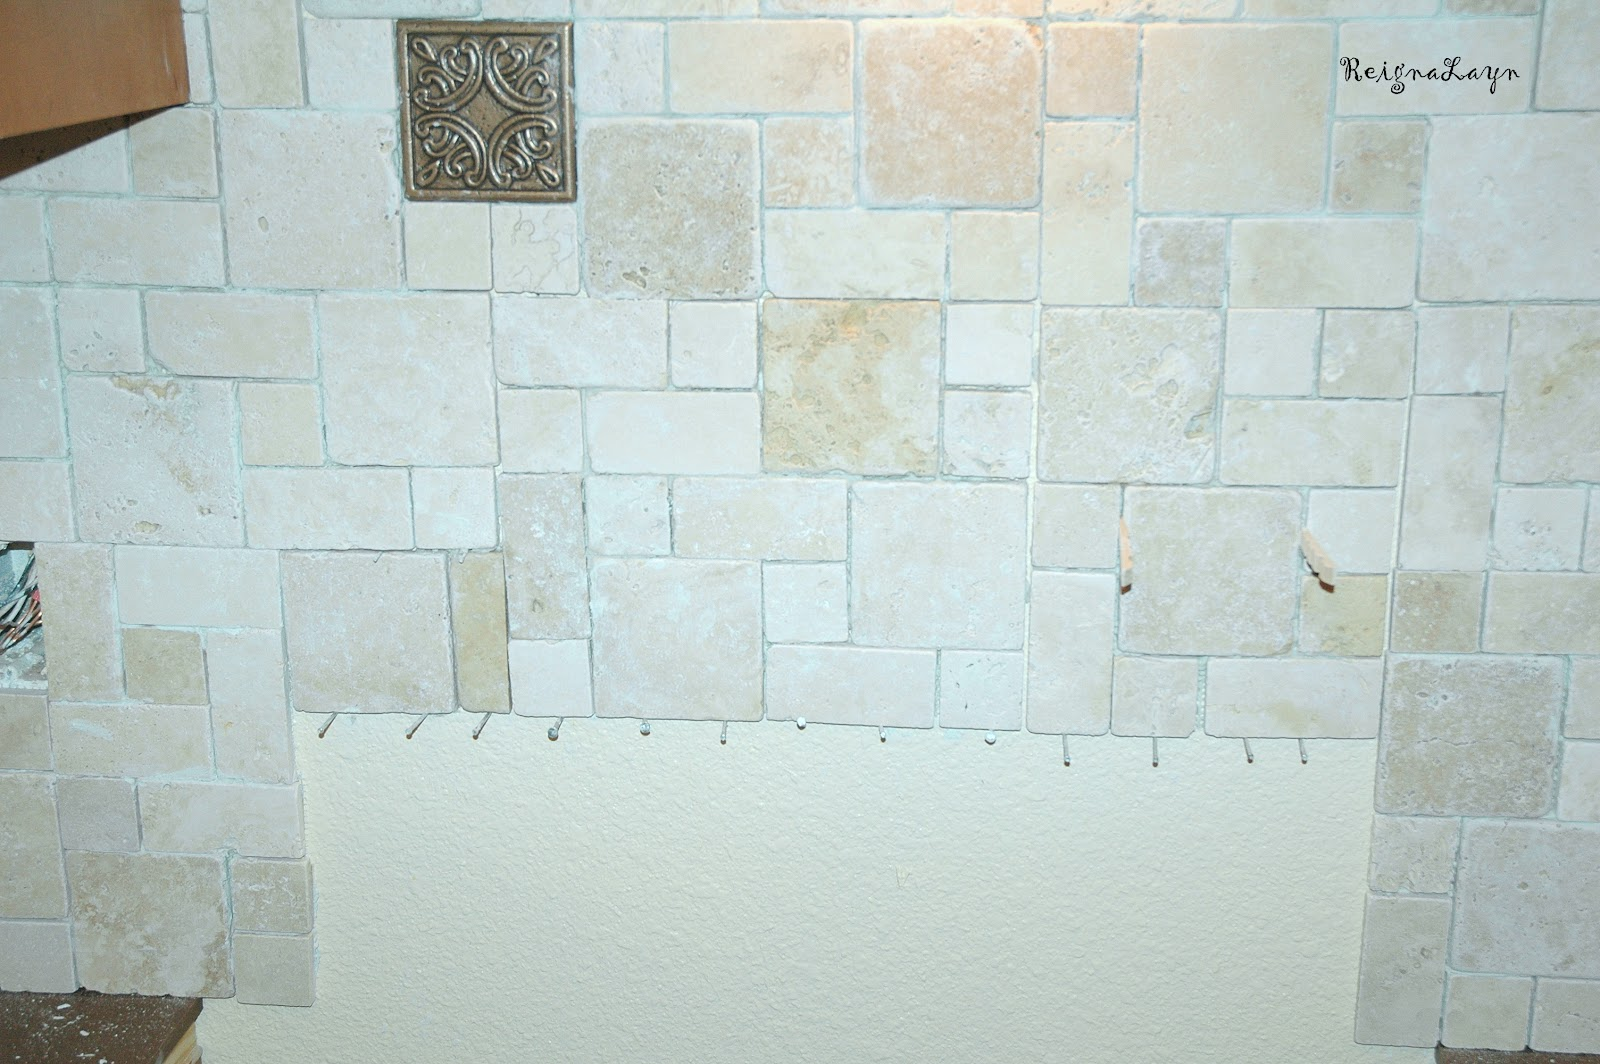 Reigna Layn: Tiling the Backsplash